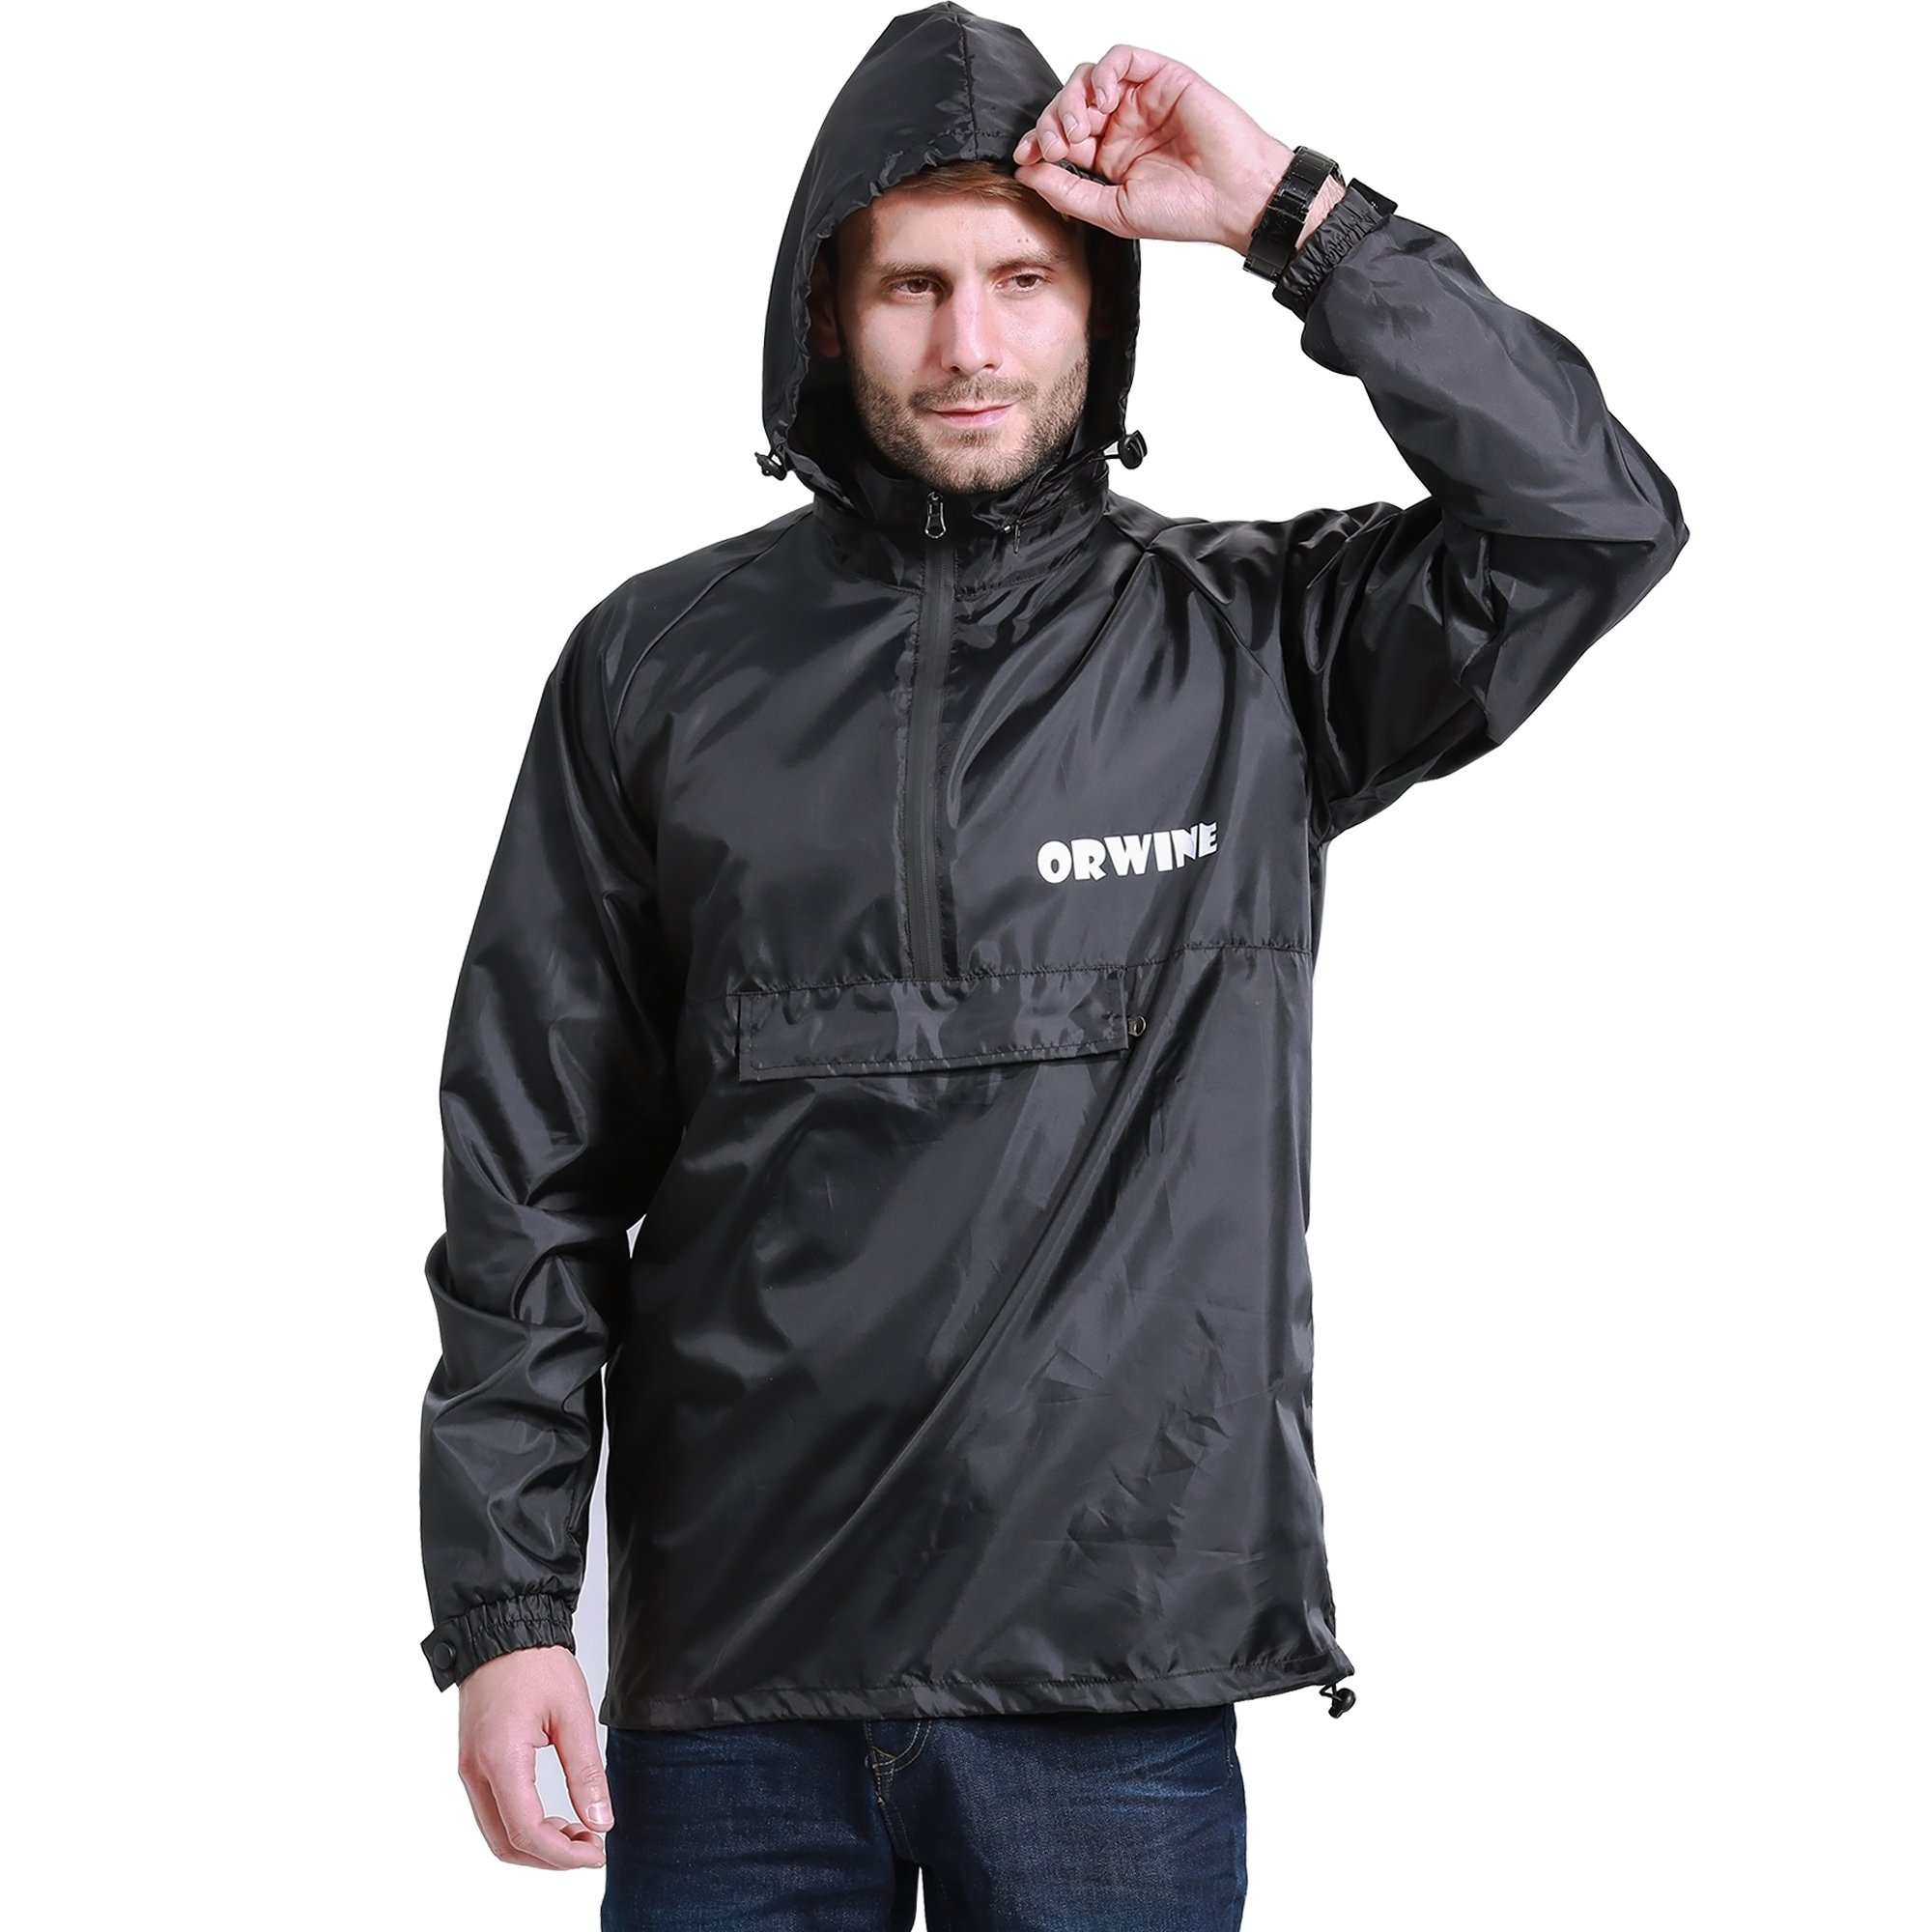 ZDHGLOBAL Men's Women's Lightweight Packable Portable Rain Jacket with Invisiable Hood and Front Pocket for Outdoor Activity 3XL Black by ZDHGLOBAL